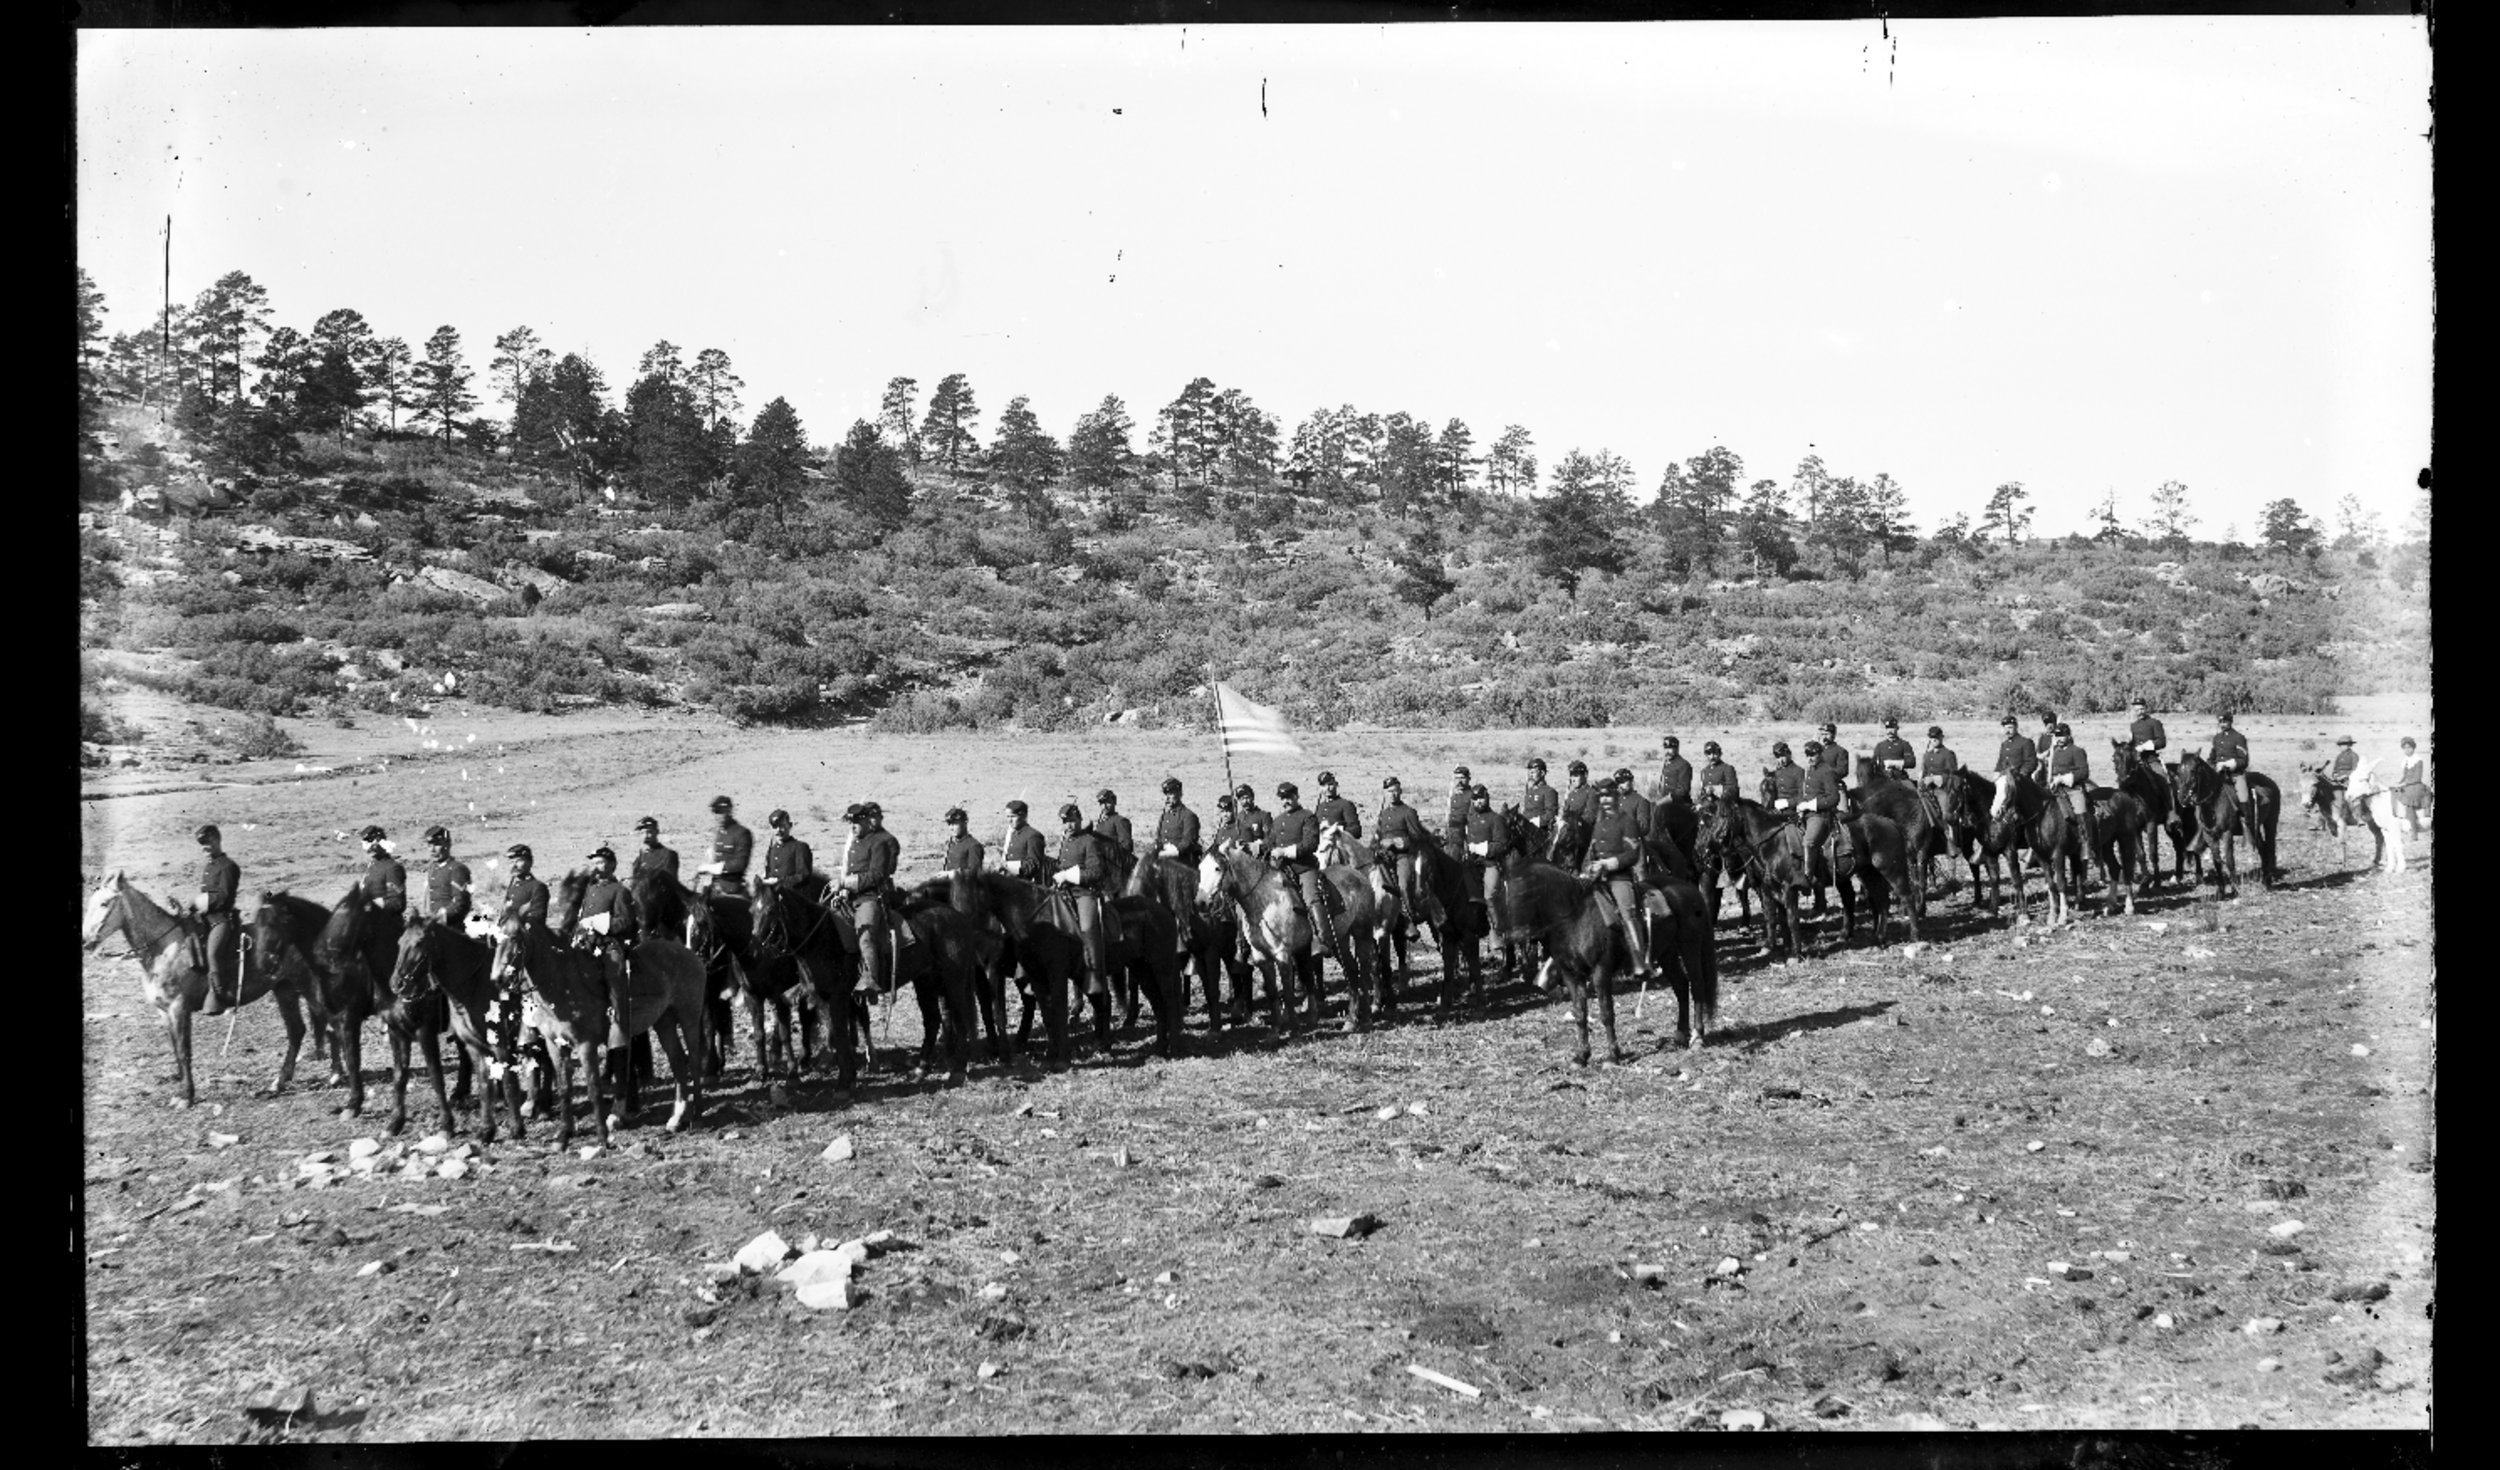 Fort Lyon and Fort Union - Mounted troops, Troop E, 6th Cavalry, taken at Fort Union, New Mexico. Neg *2